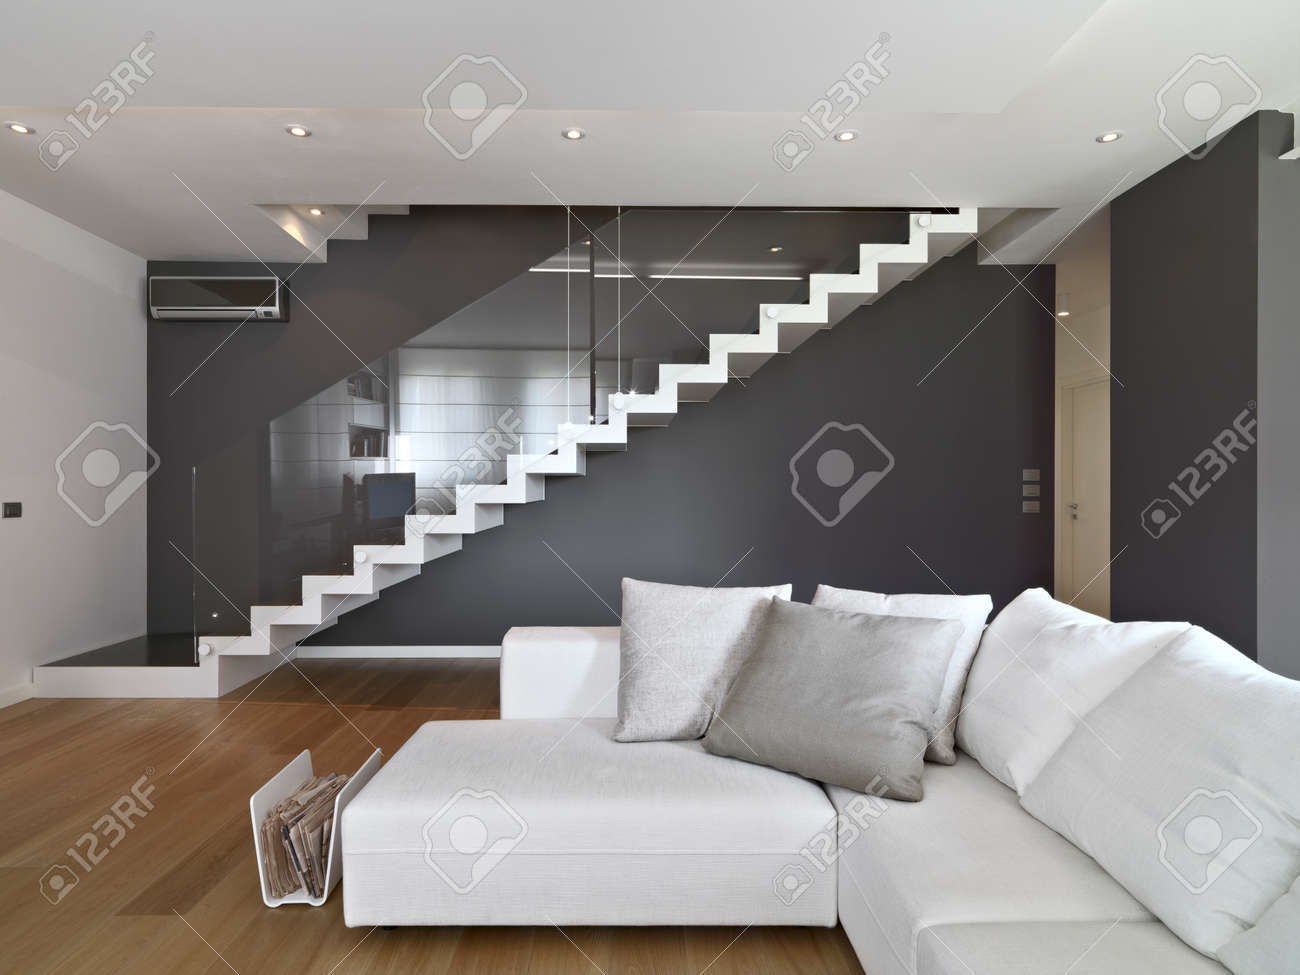 Escalier Moderne Dans Salon fabric sofa in the modern living room with staircase and wood..